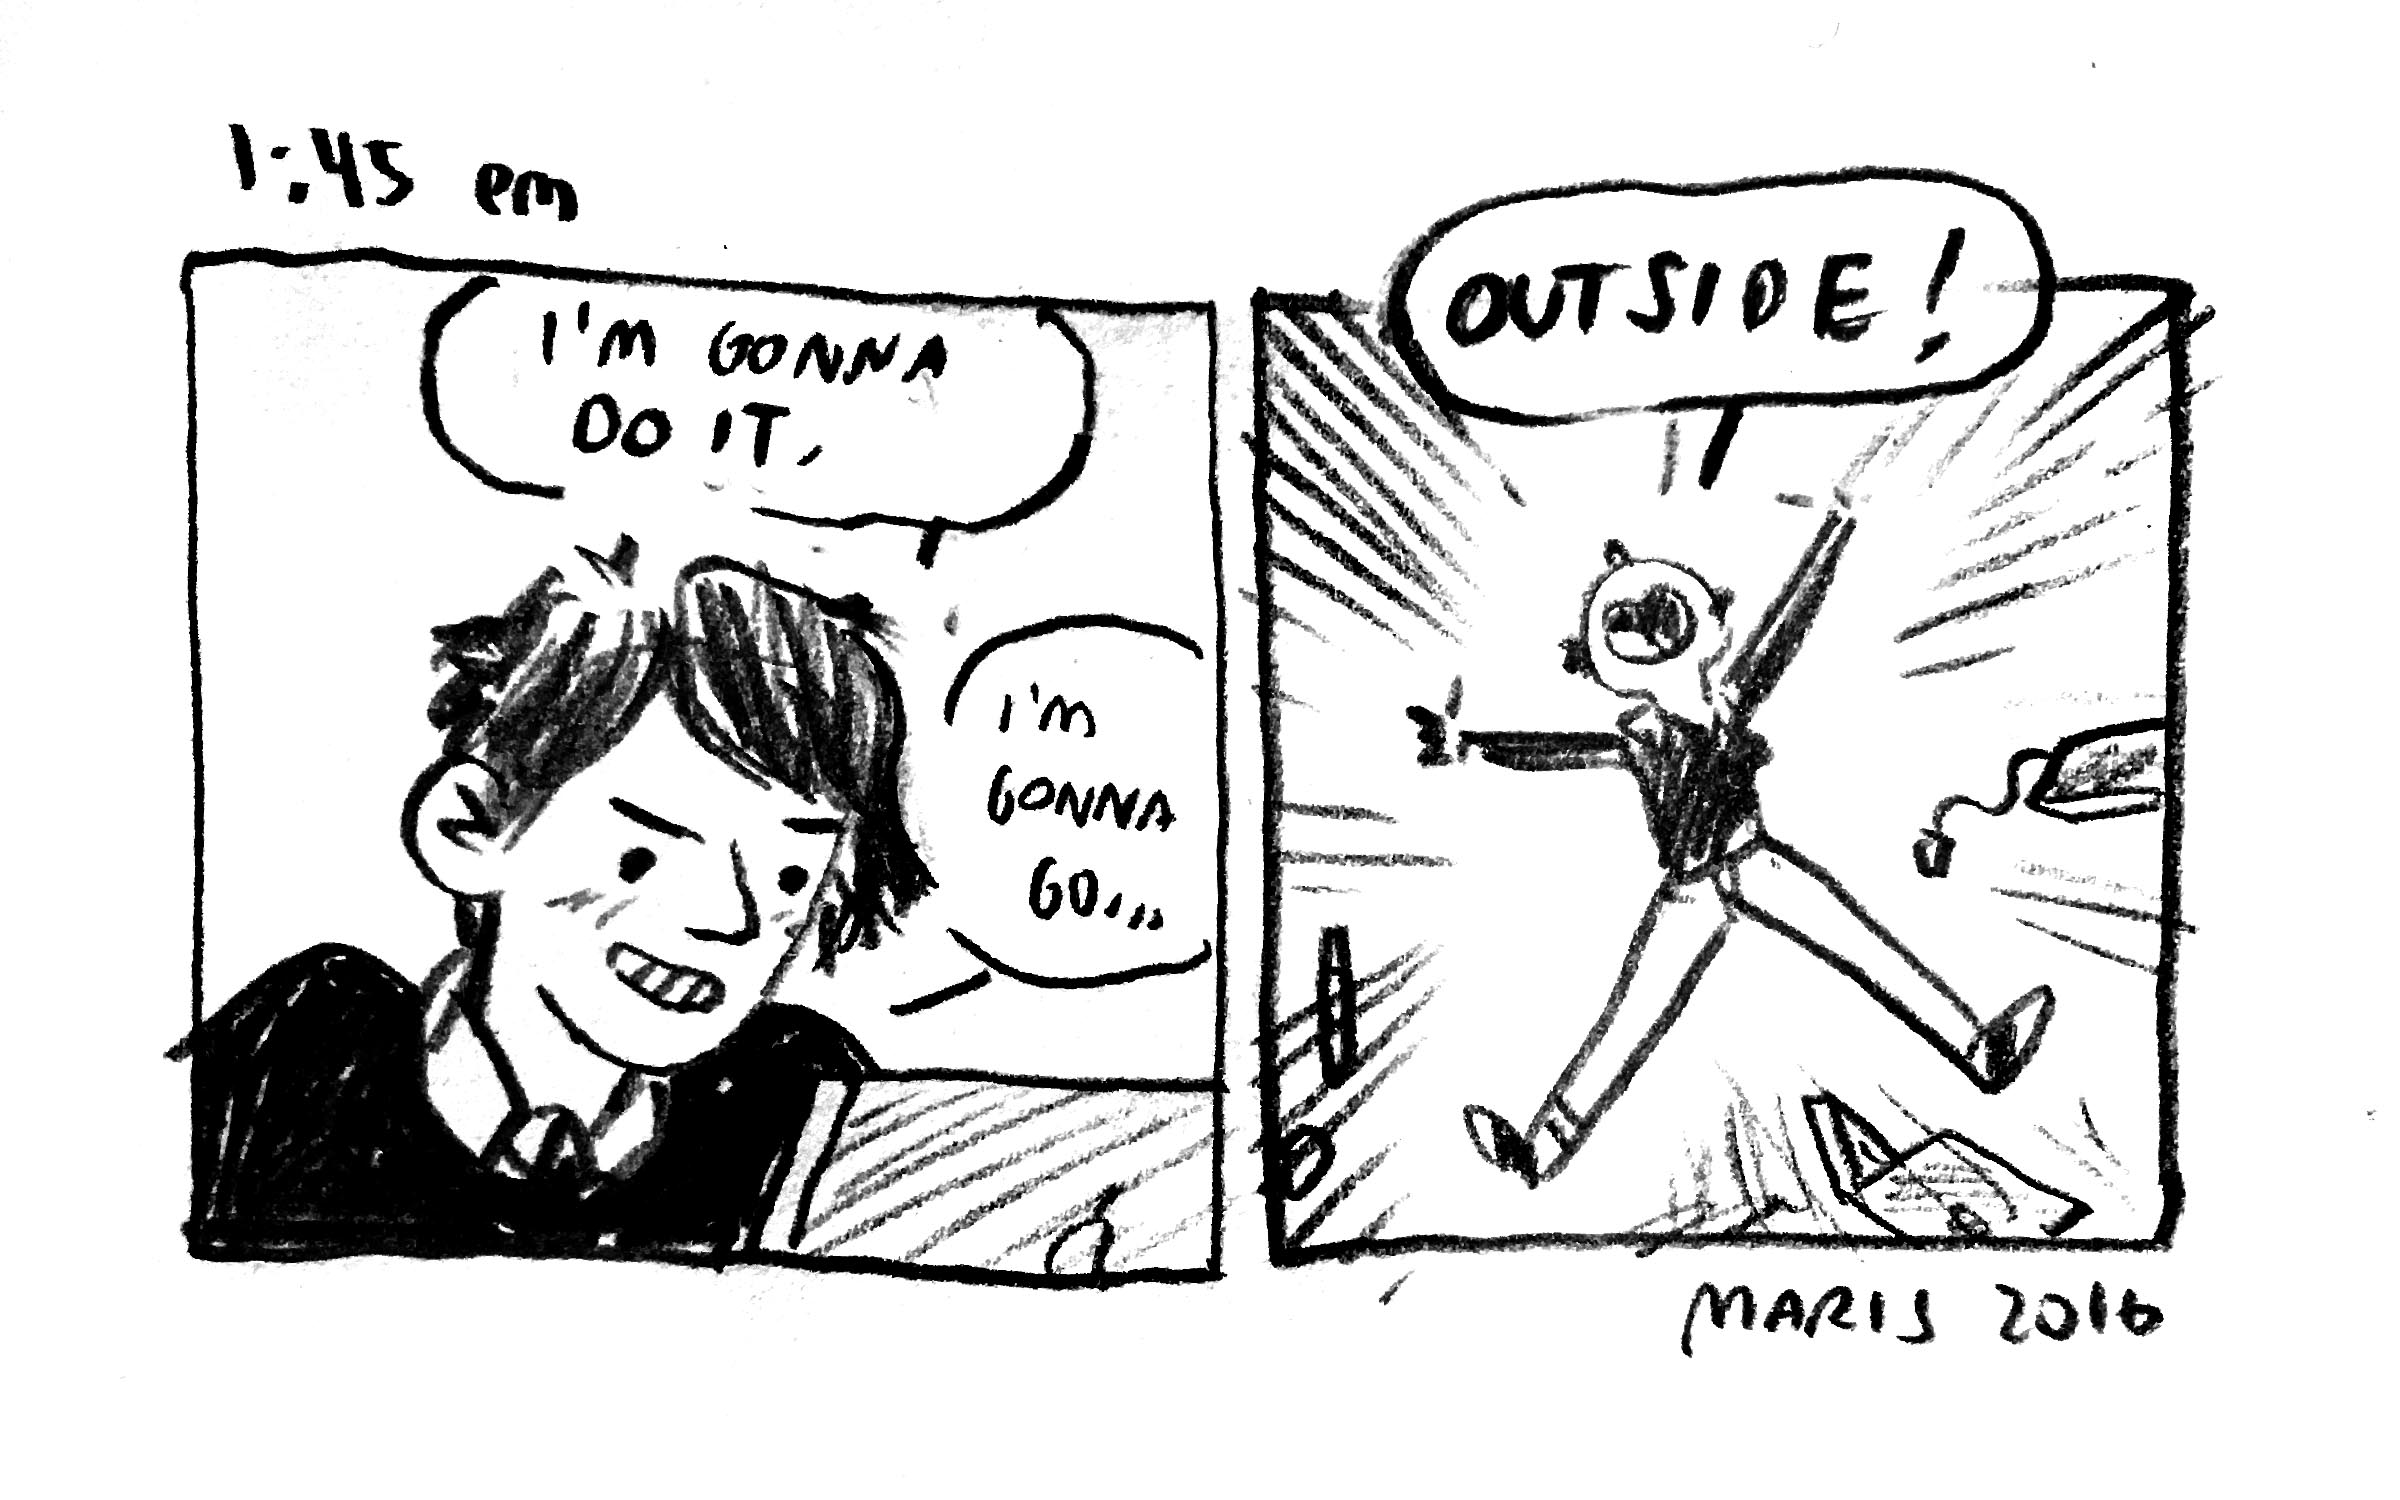 09_mw_2016_hourlies.jpg